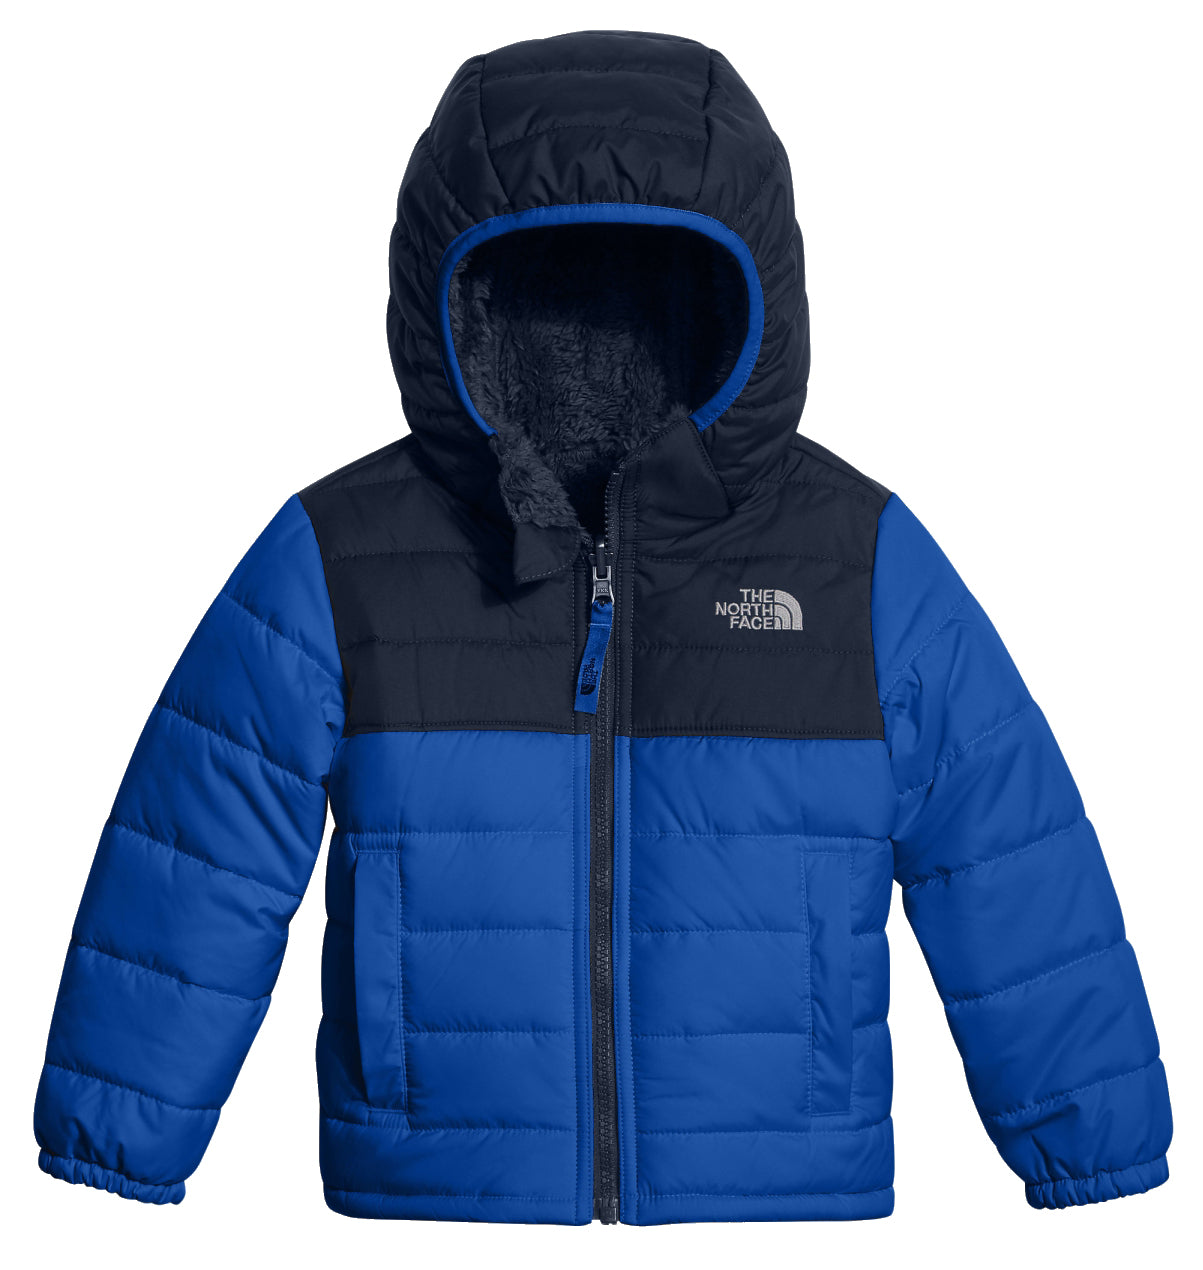 532c8975a The North Face Toddler Boy's Reversible Mount Chimborazo Hoodie - Kid's